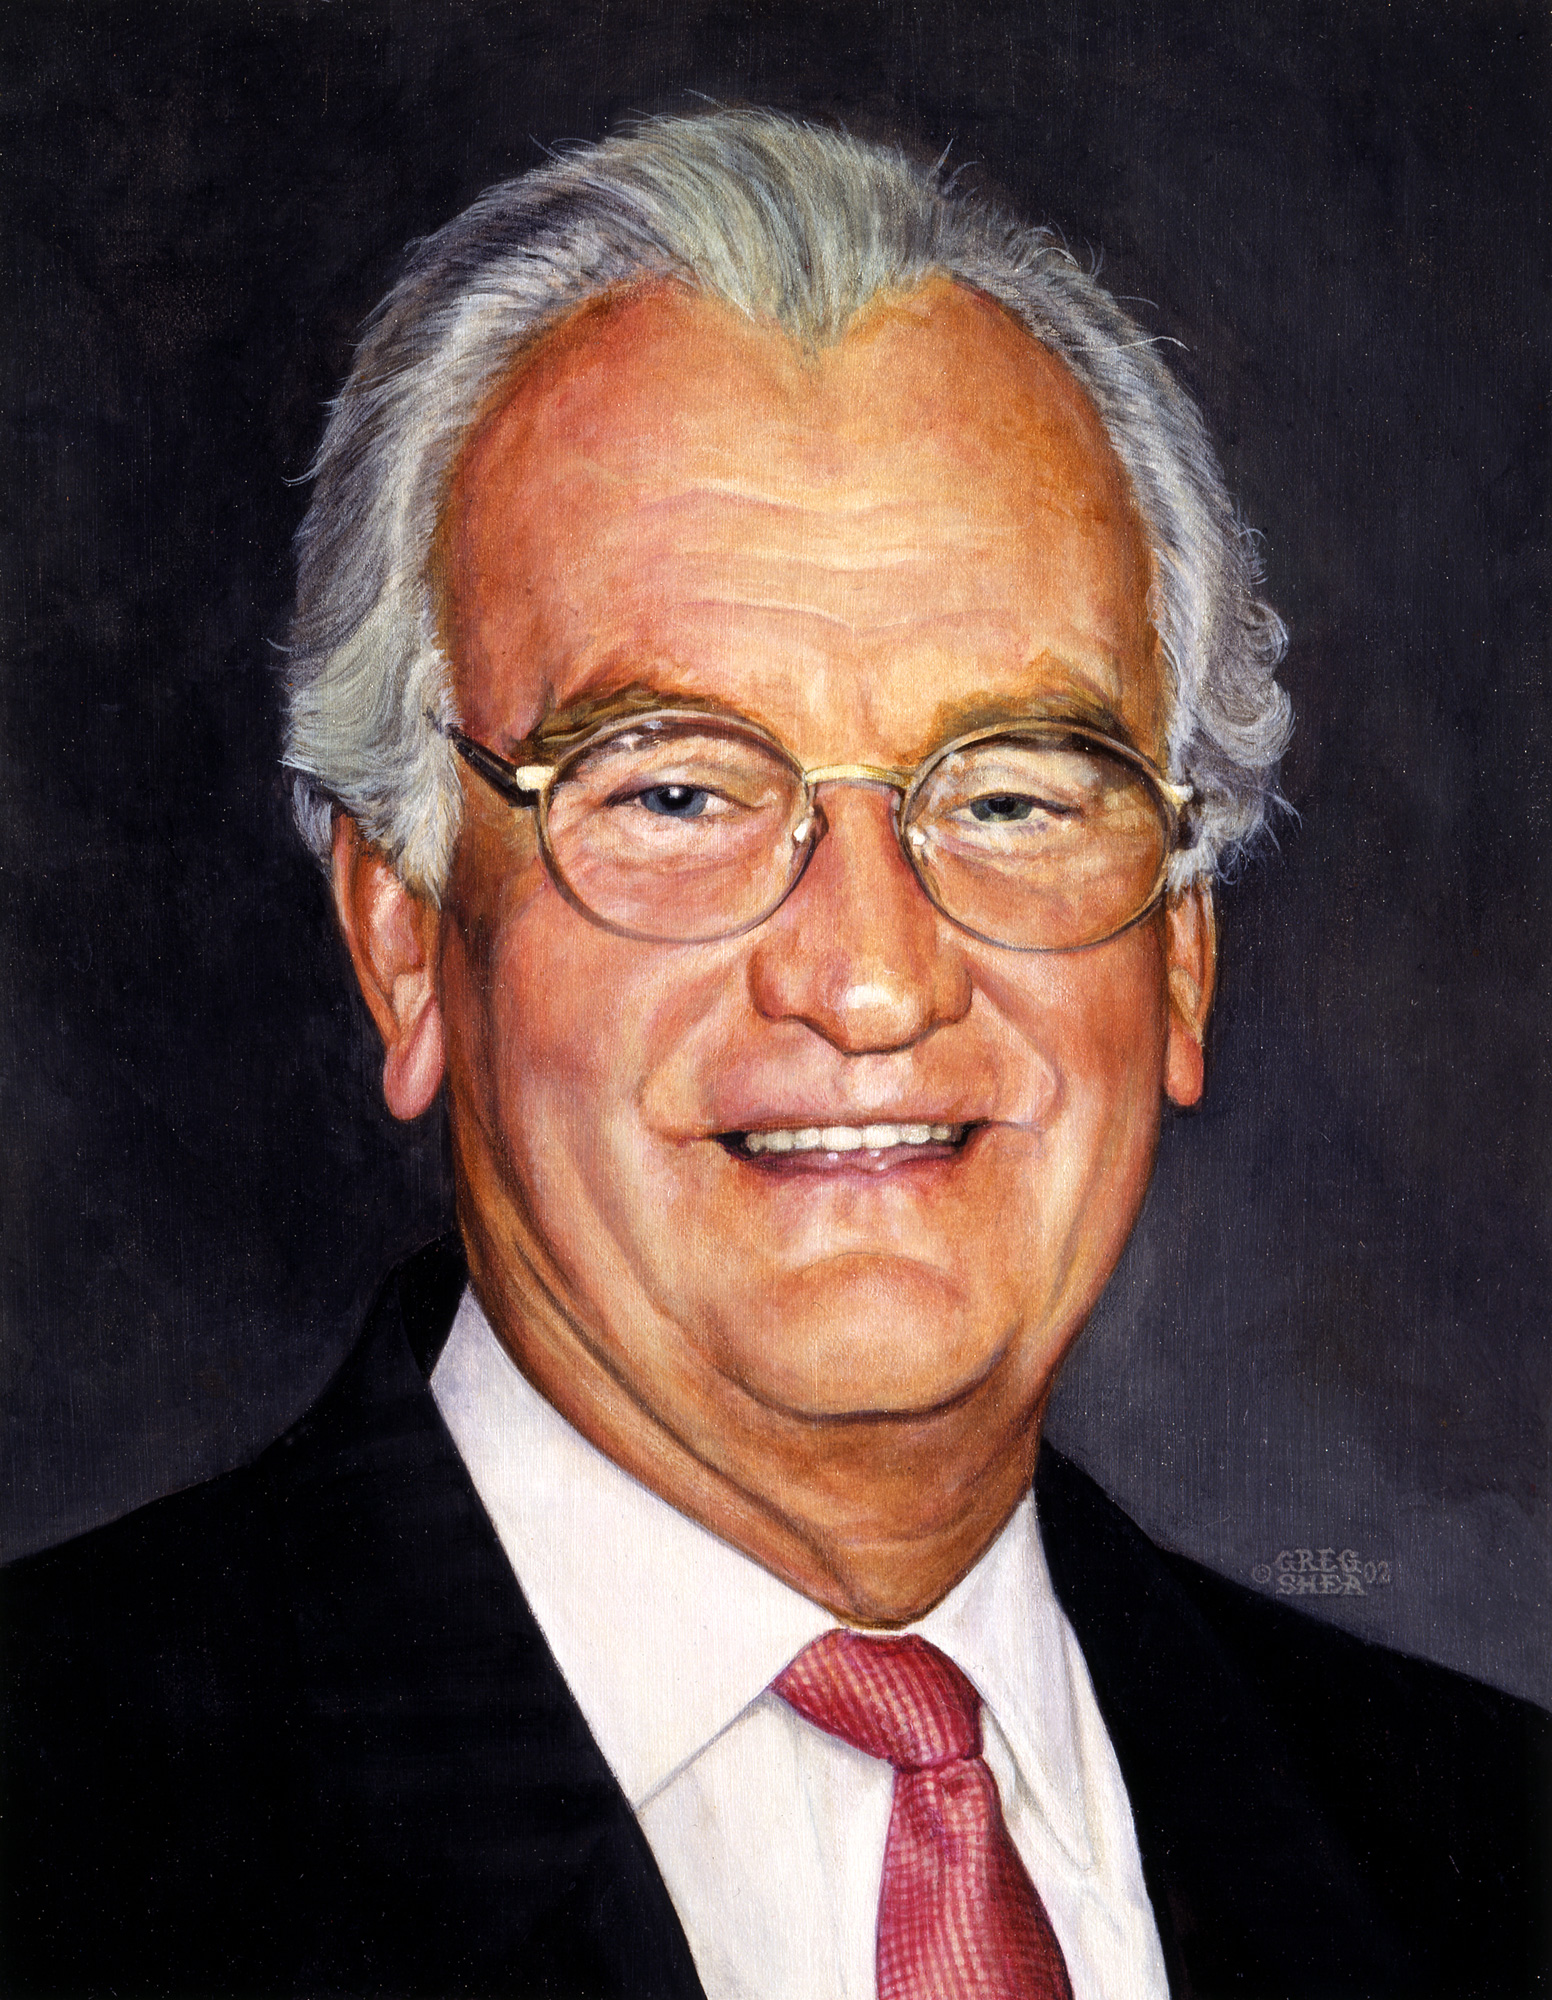 R. Kinley  , portrait commission, 2002  .   Acrylic on board.     Private collection  .